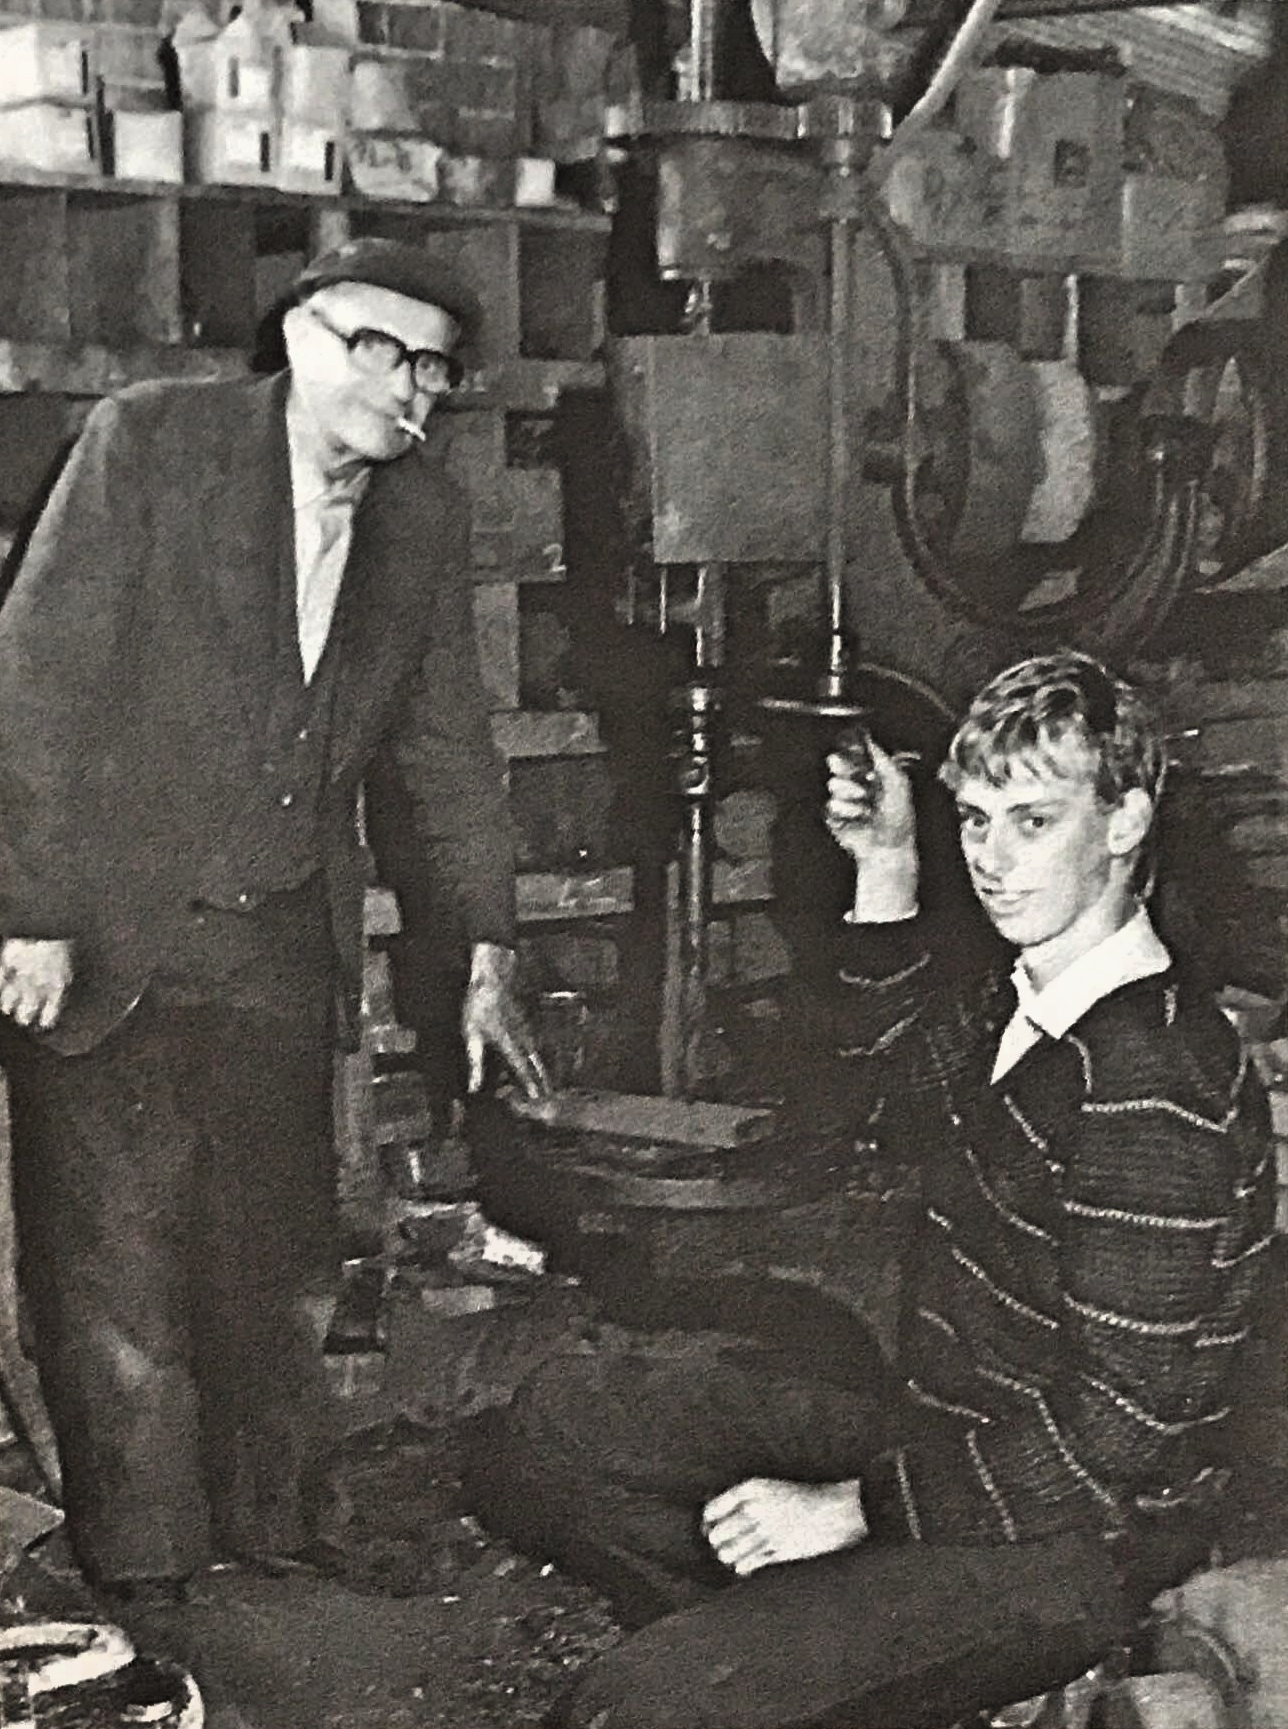 Blacksmith Cyril Carter with grandson Stuart